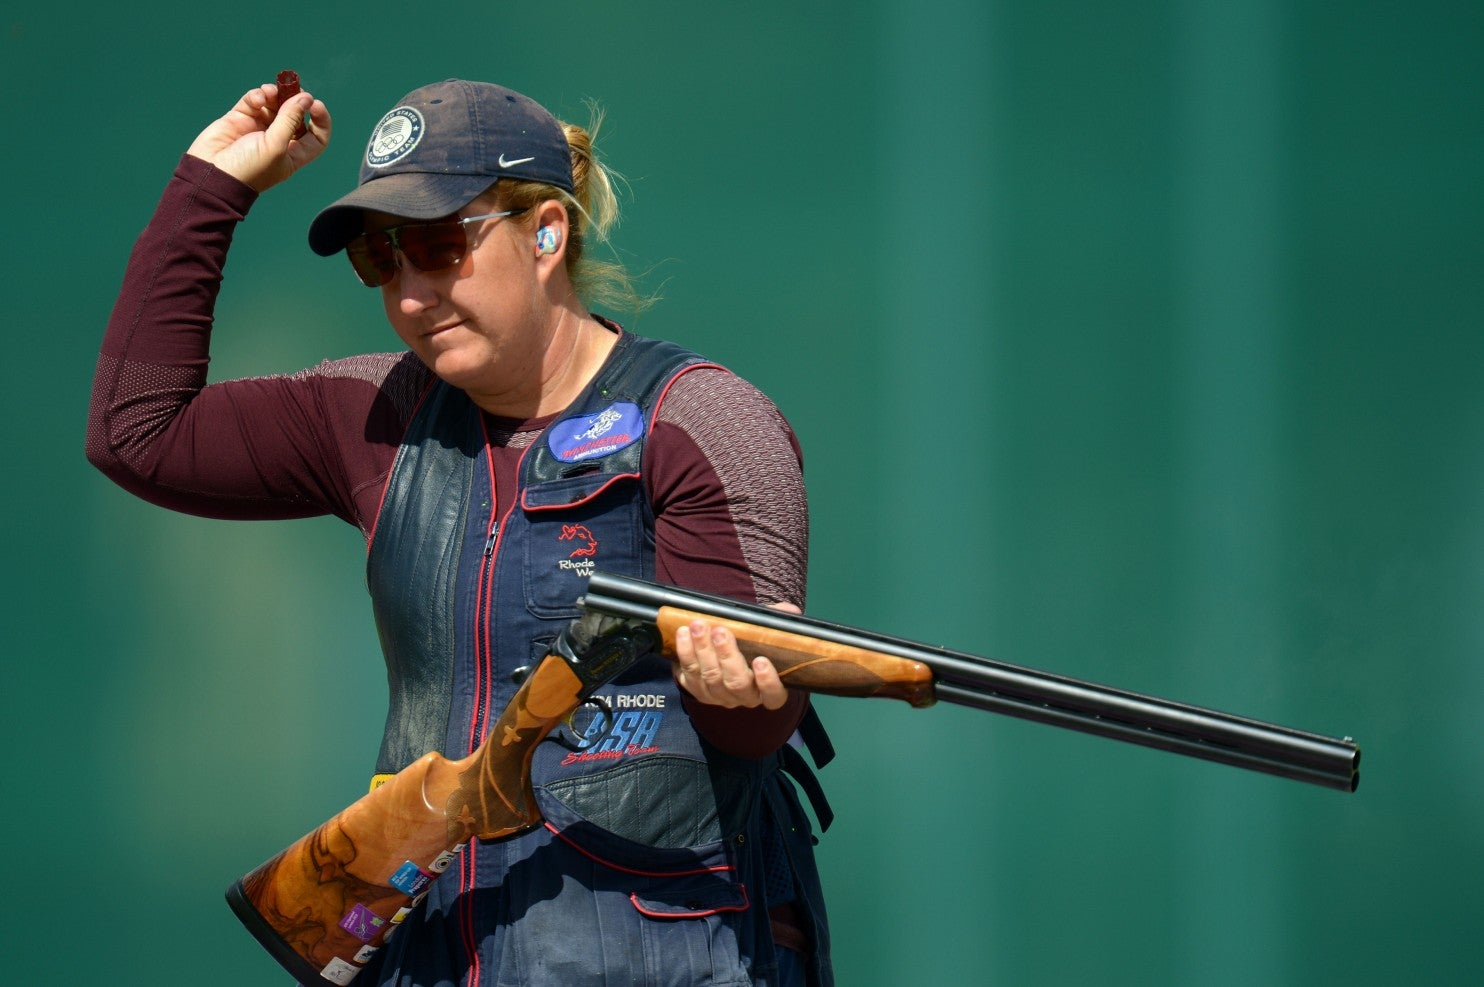 Olympic Shooters: Anti-Gun Laws, People Affect Us